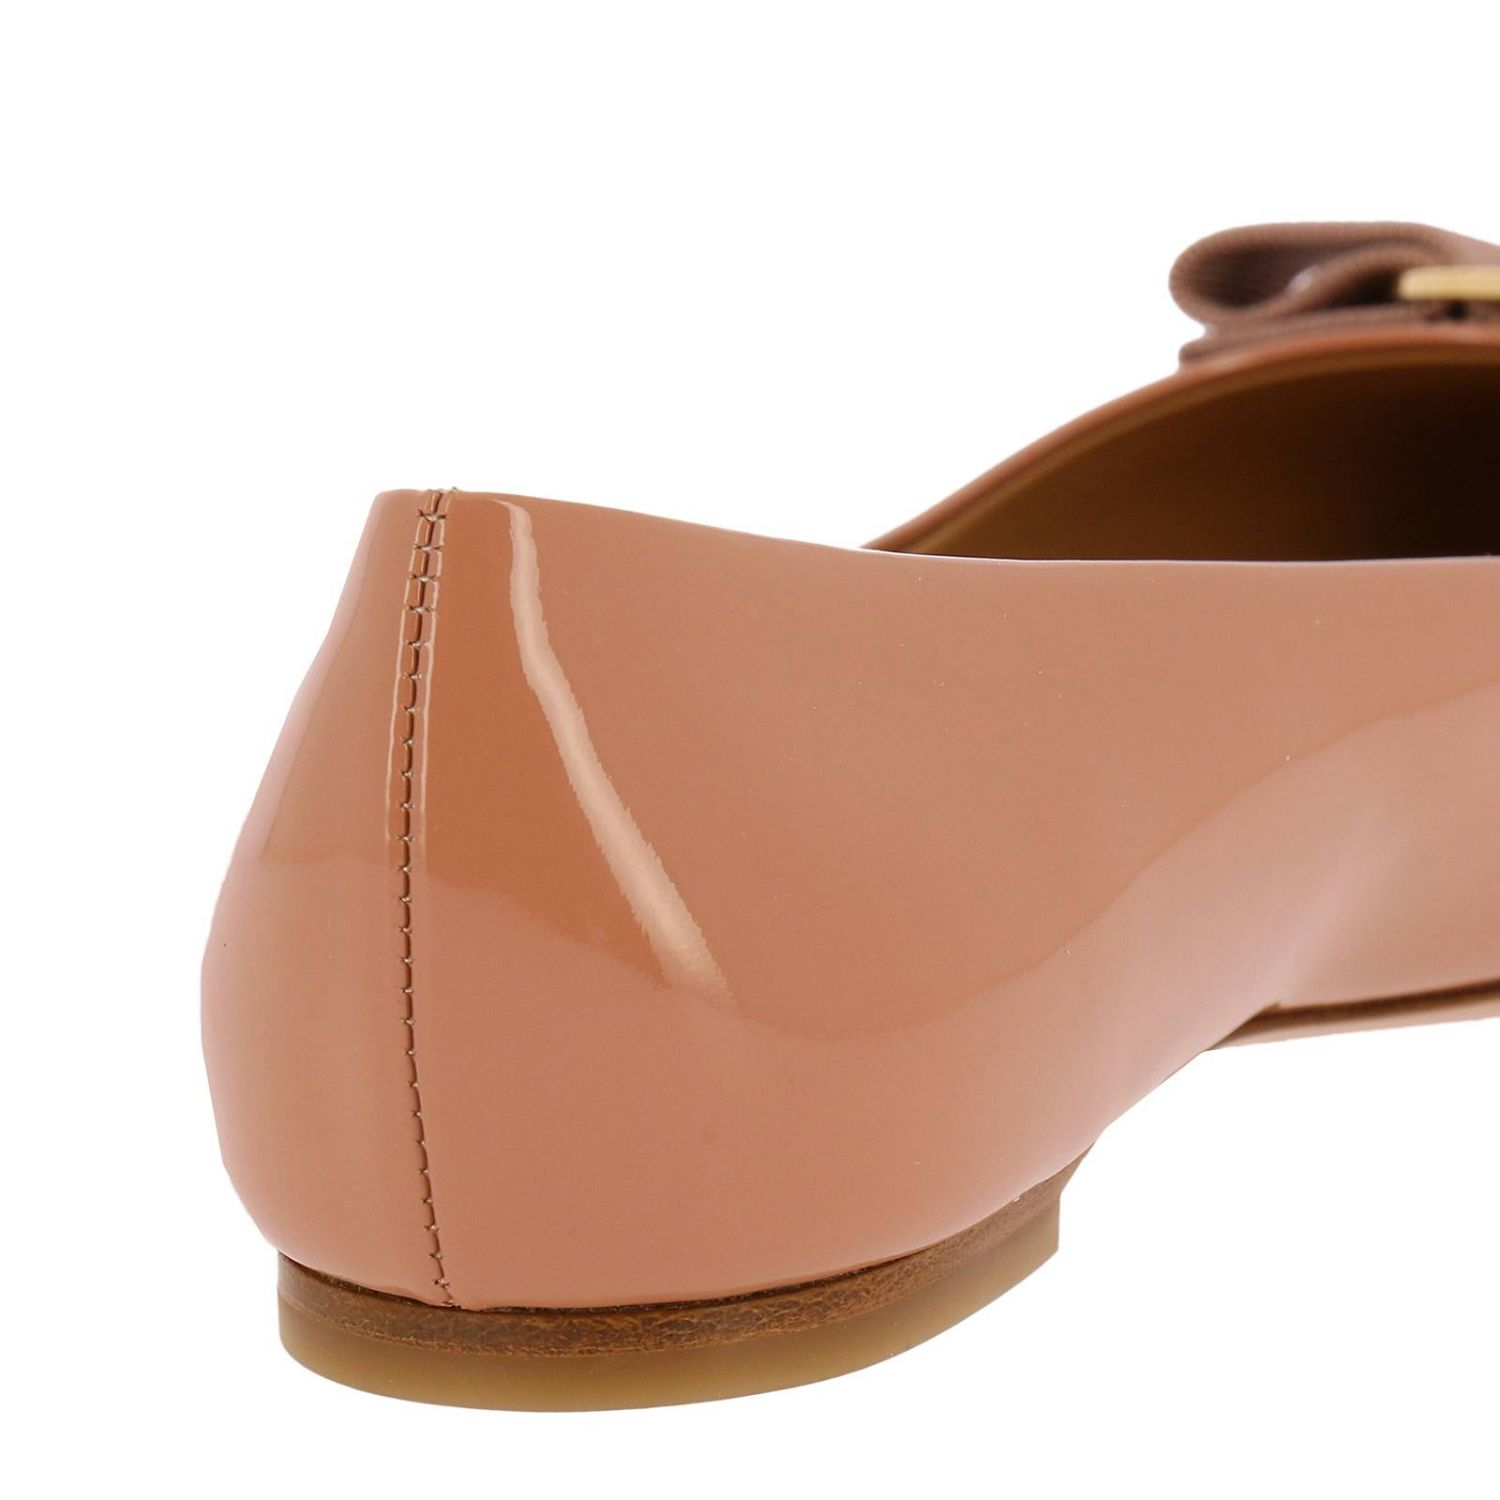 Ballet flats Salvatore Ferragamo: Varina ballet flats in patent leather with Vara gros grain bow blush pink 4